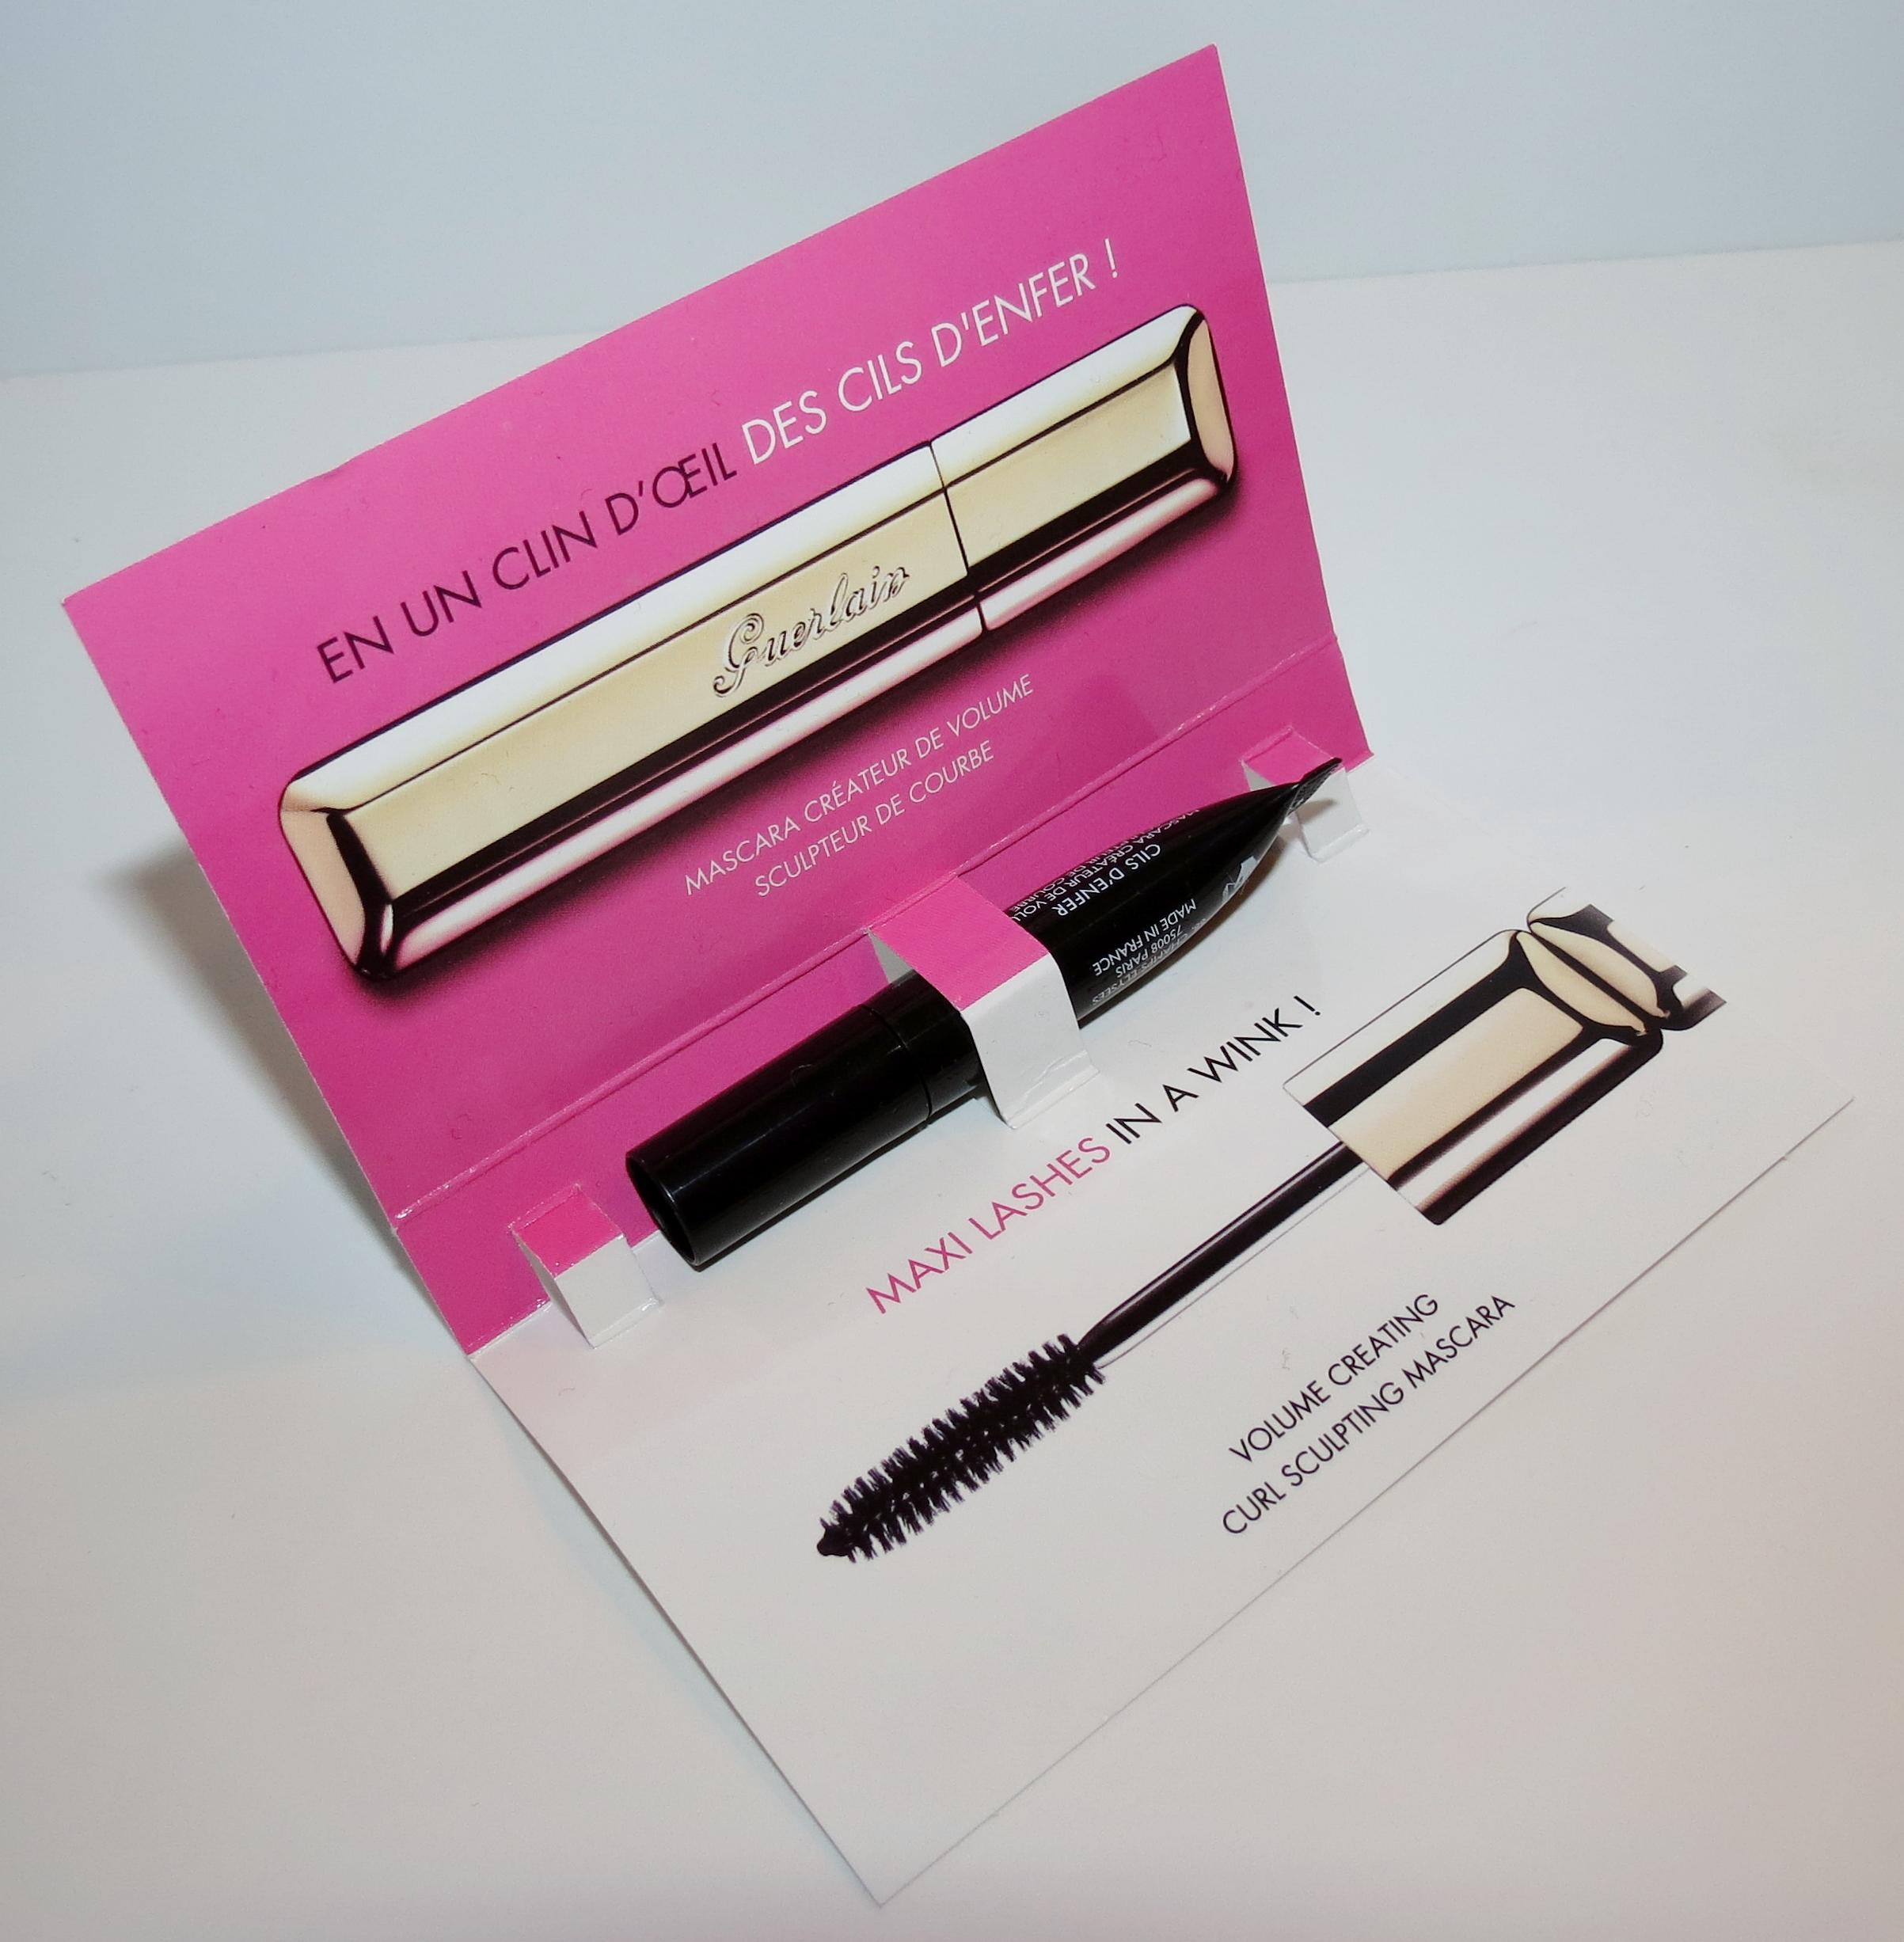 Guerlain Cils D Enfer Maxi Lash Mascara Swatches Review Blushing Noir